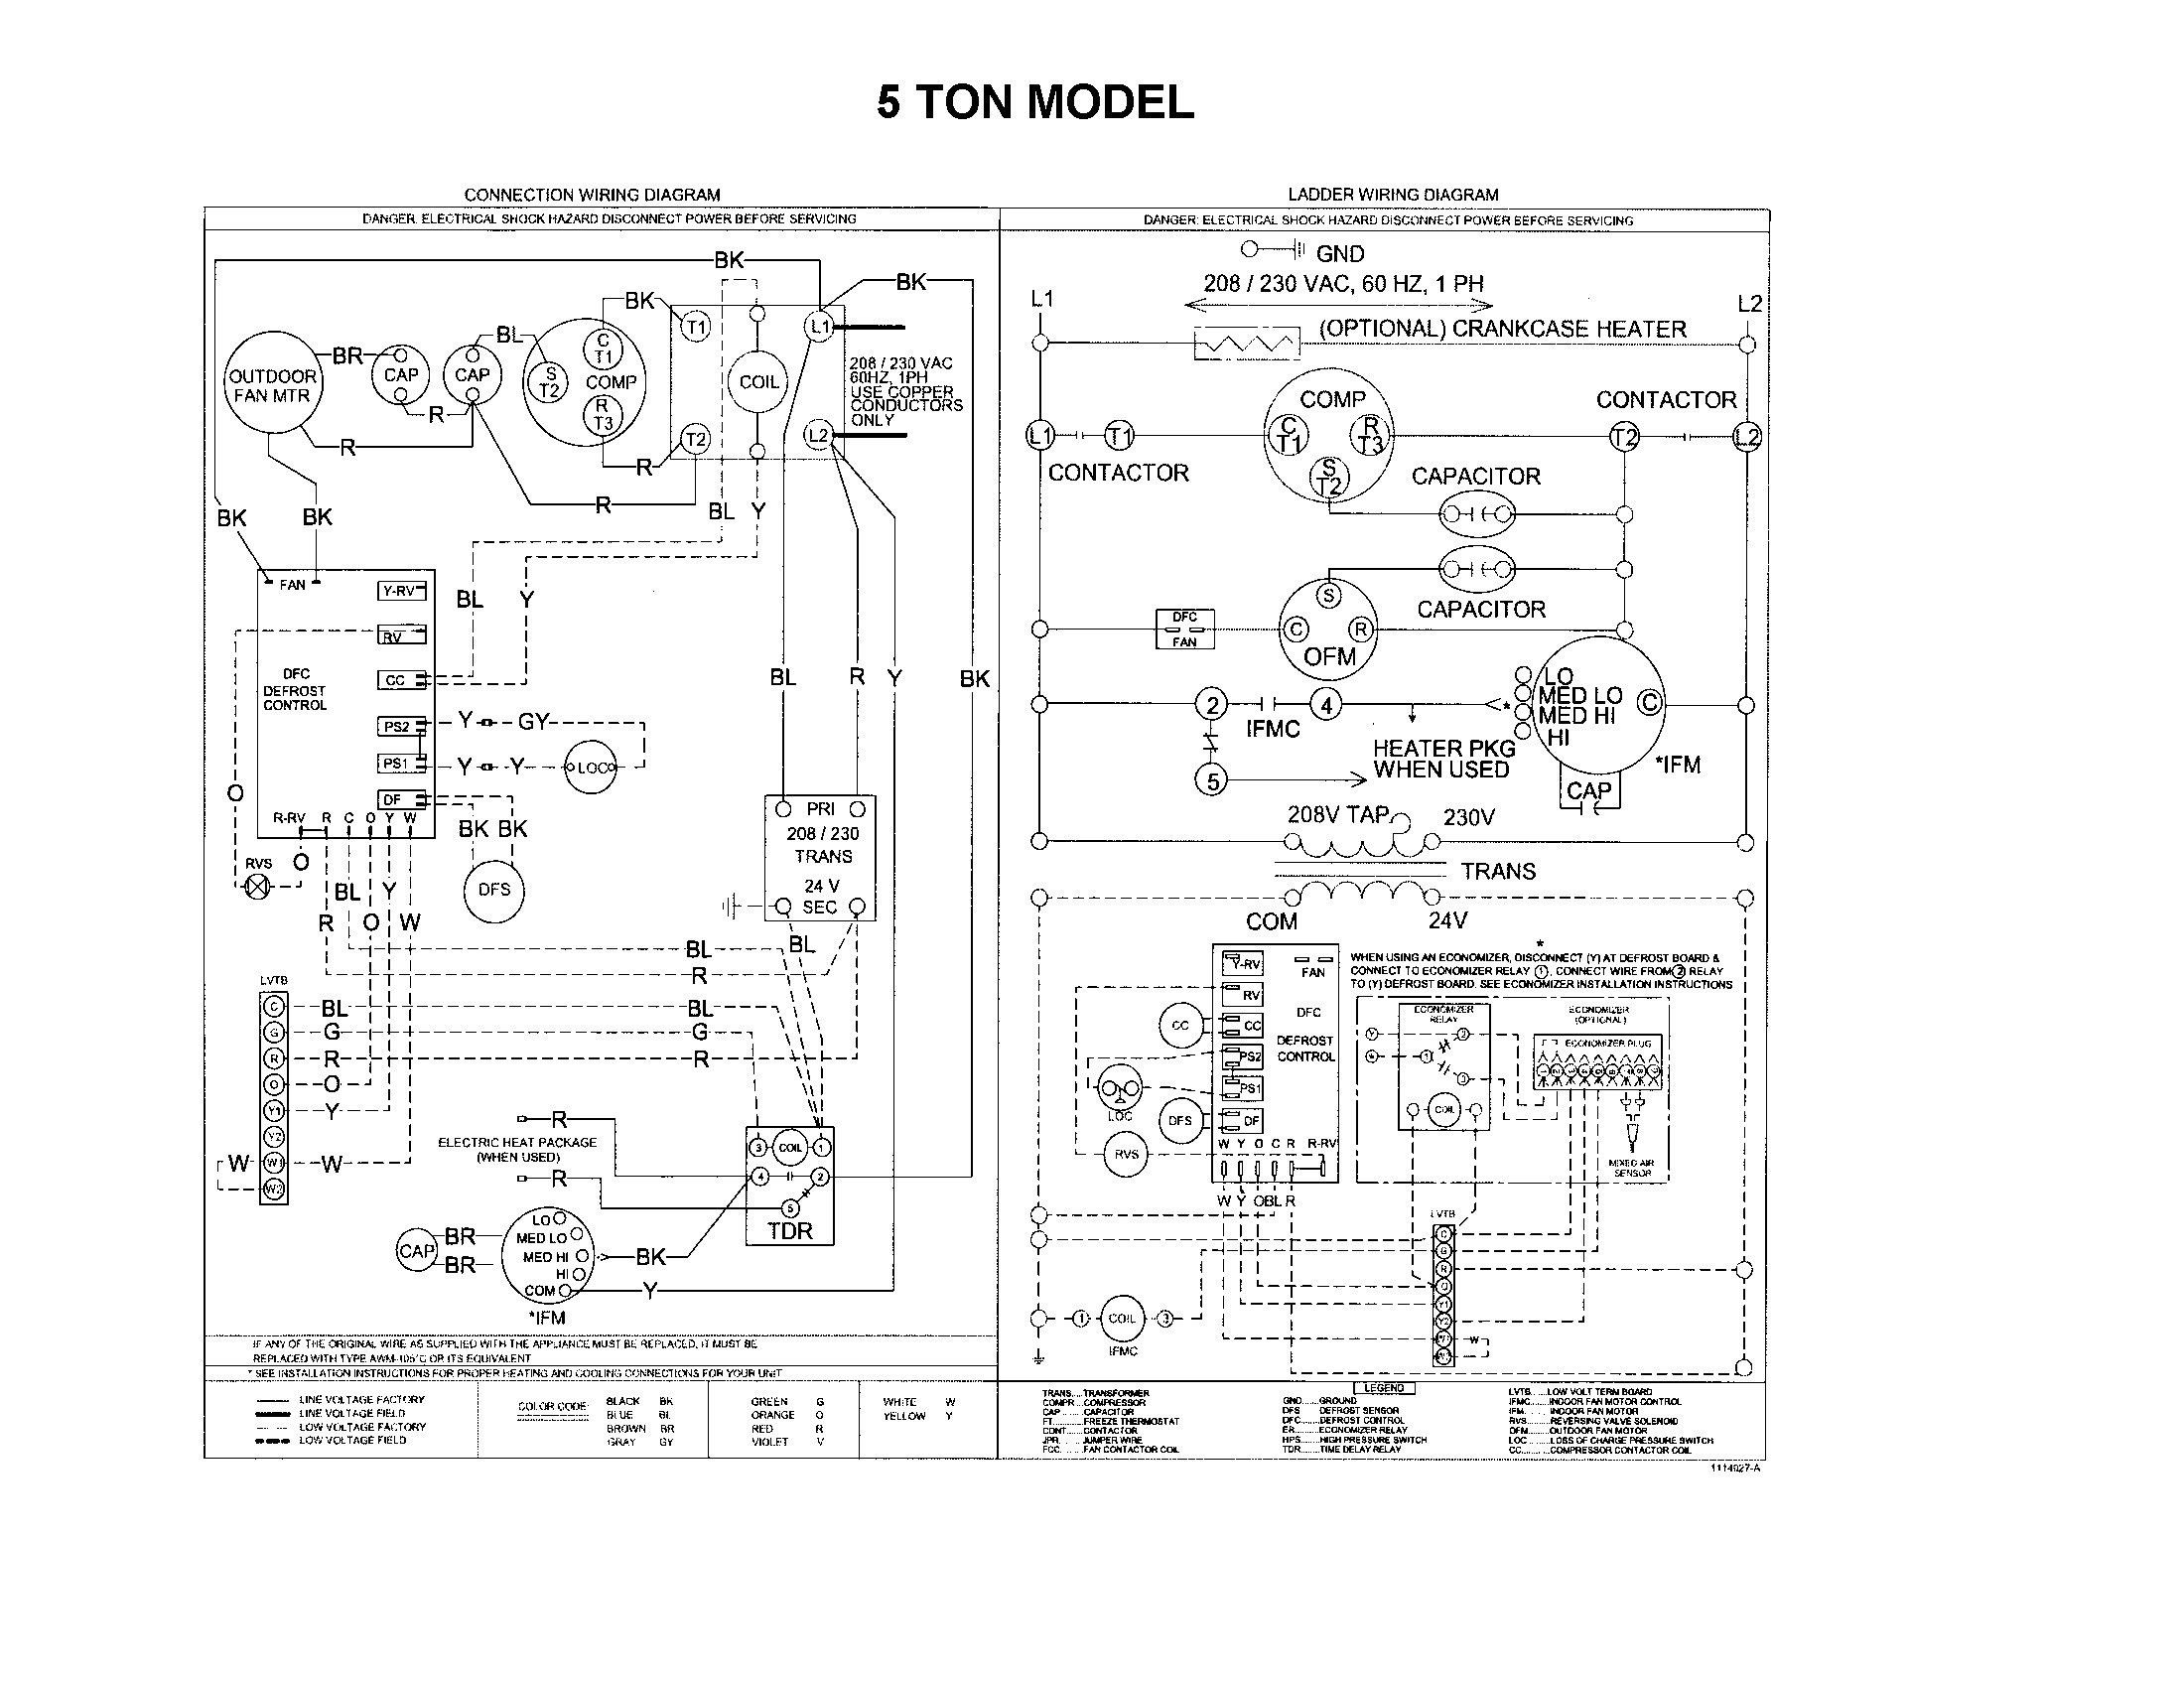 New Wiring Diagram Ruud Ac Unit Thermostat Wiring Trane Heat Pump Carrier Heat Pump